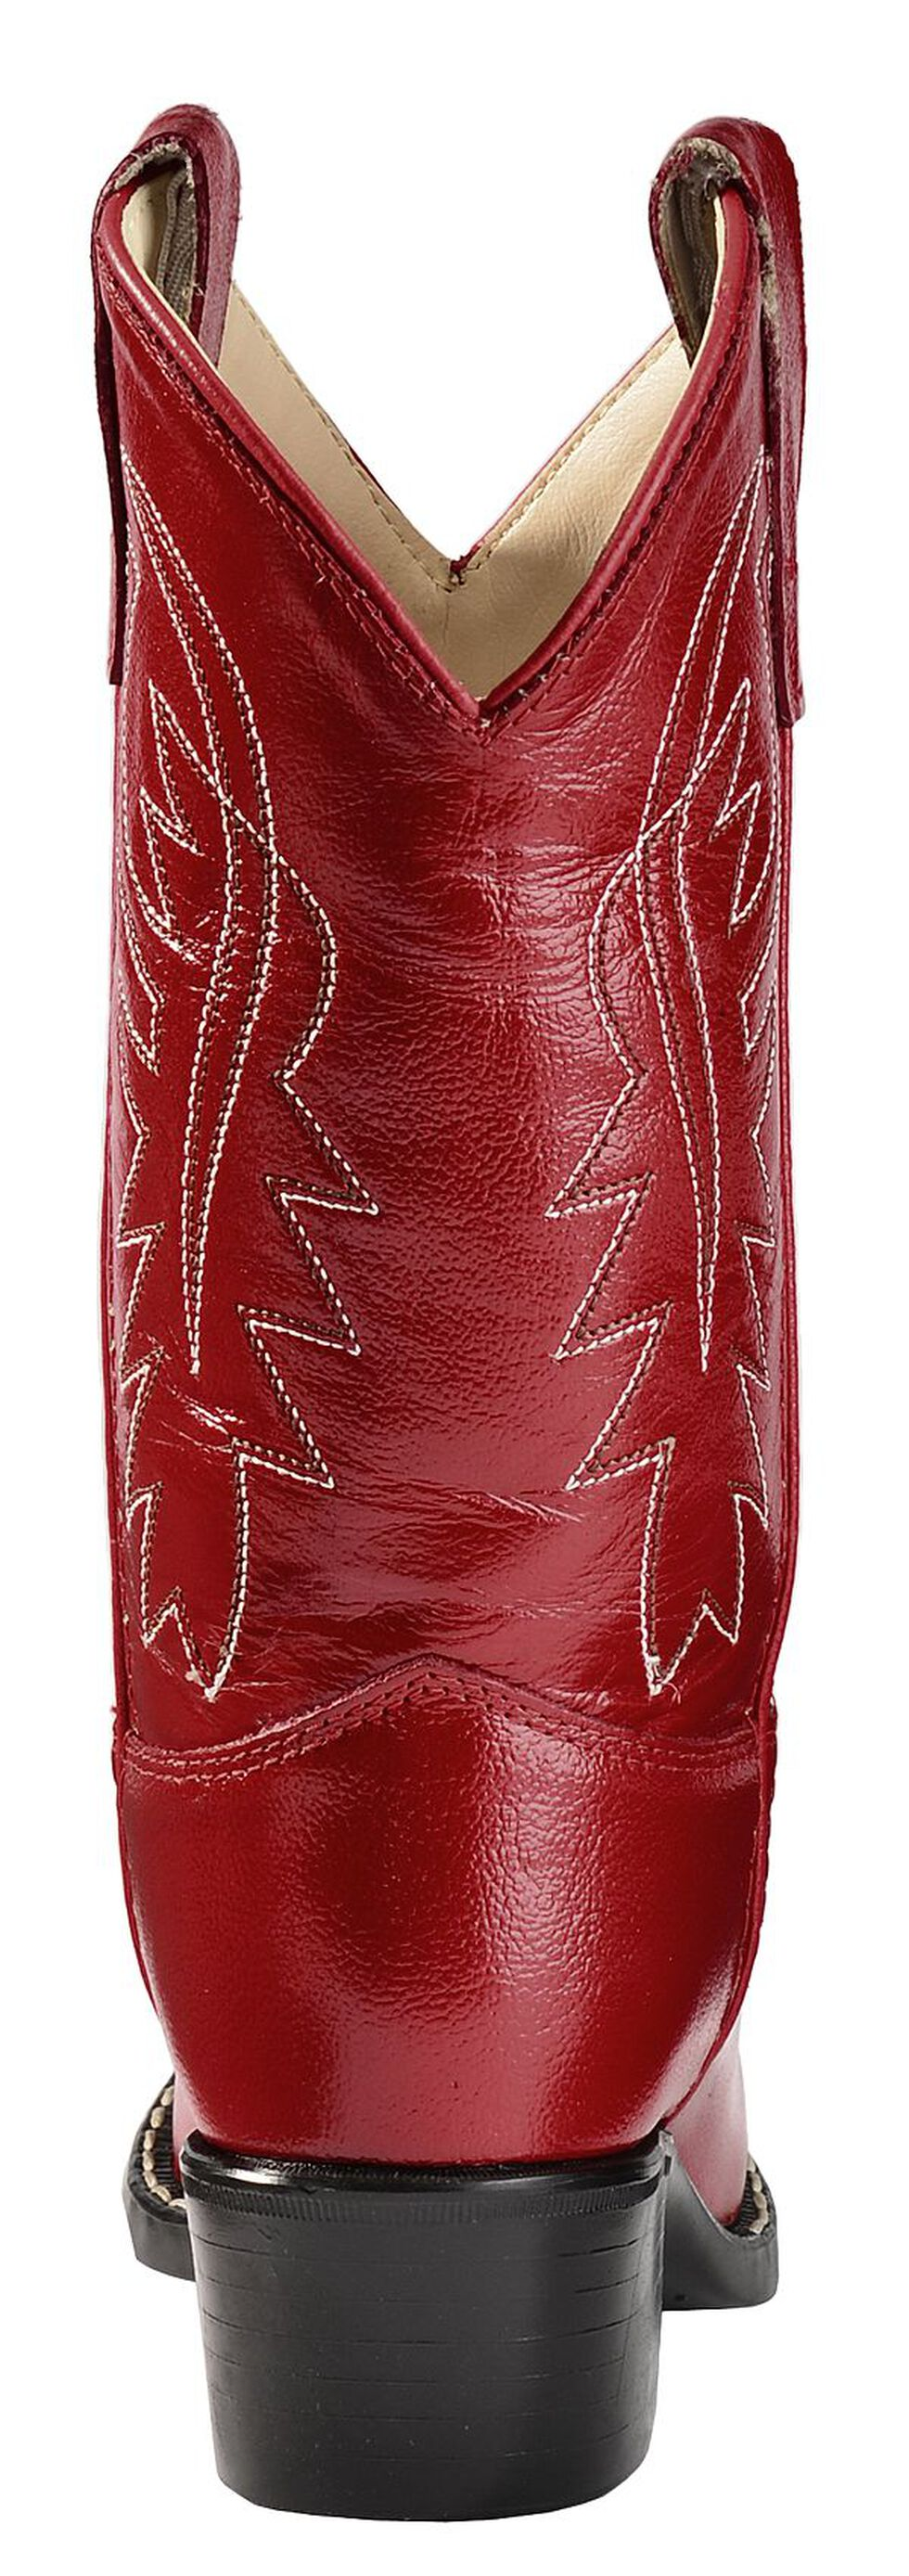 Old West Girls' Red Leather Cowgirl Boots, Red, hi-res